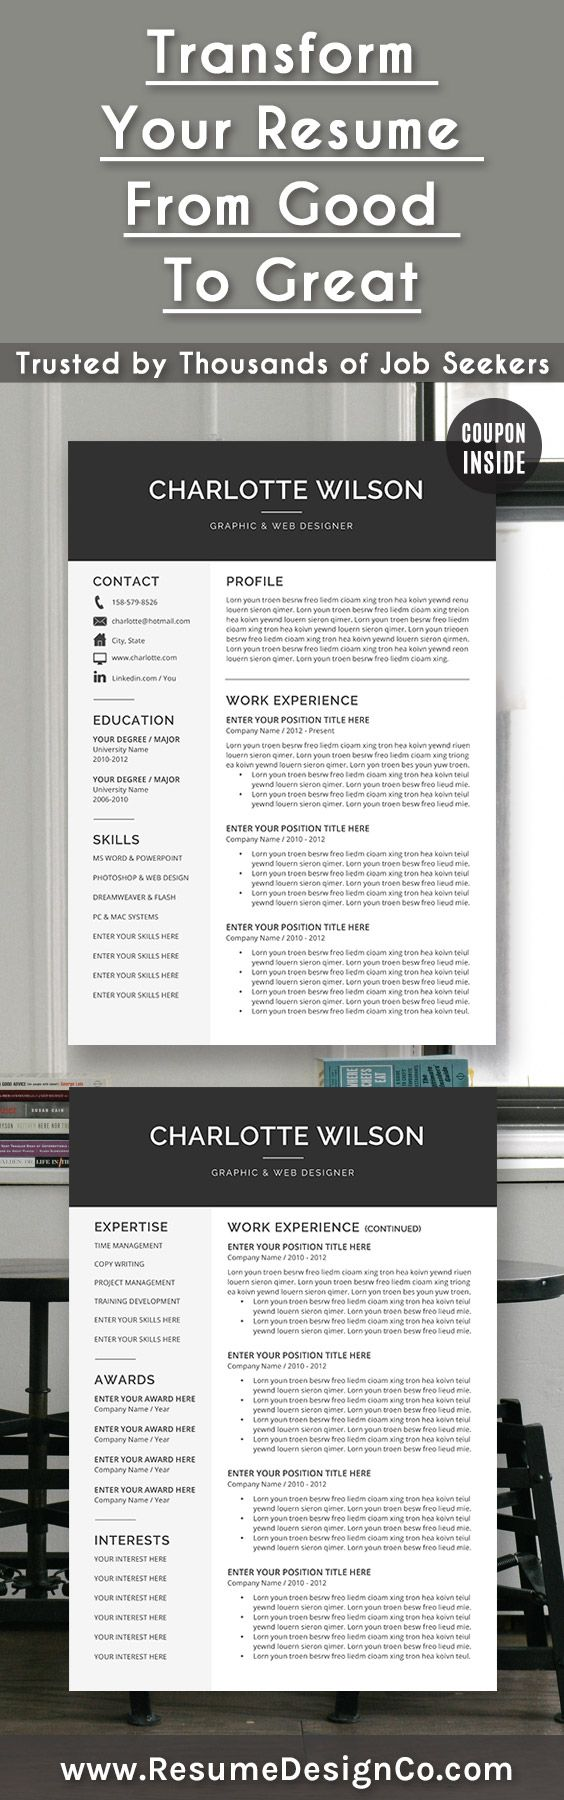 Transform your resume from good to great. Trusted by